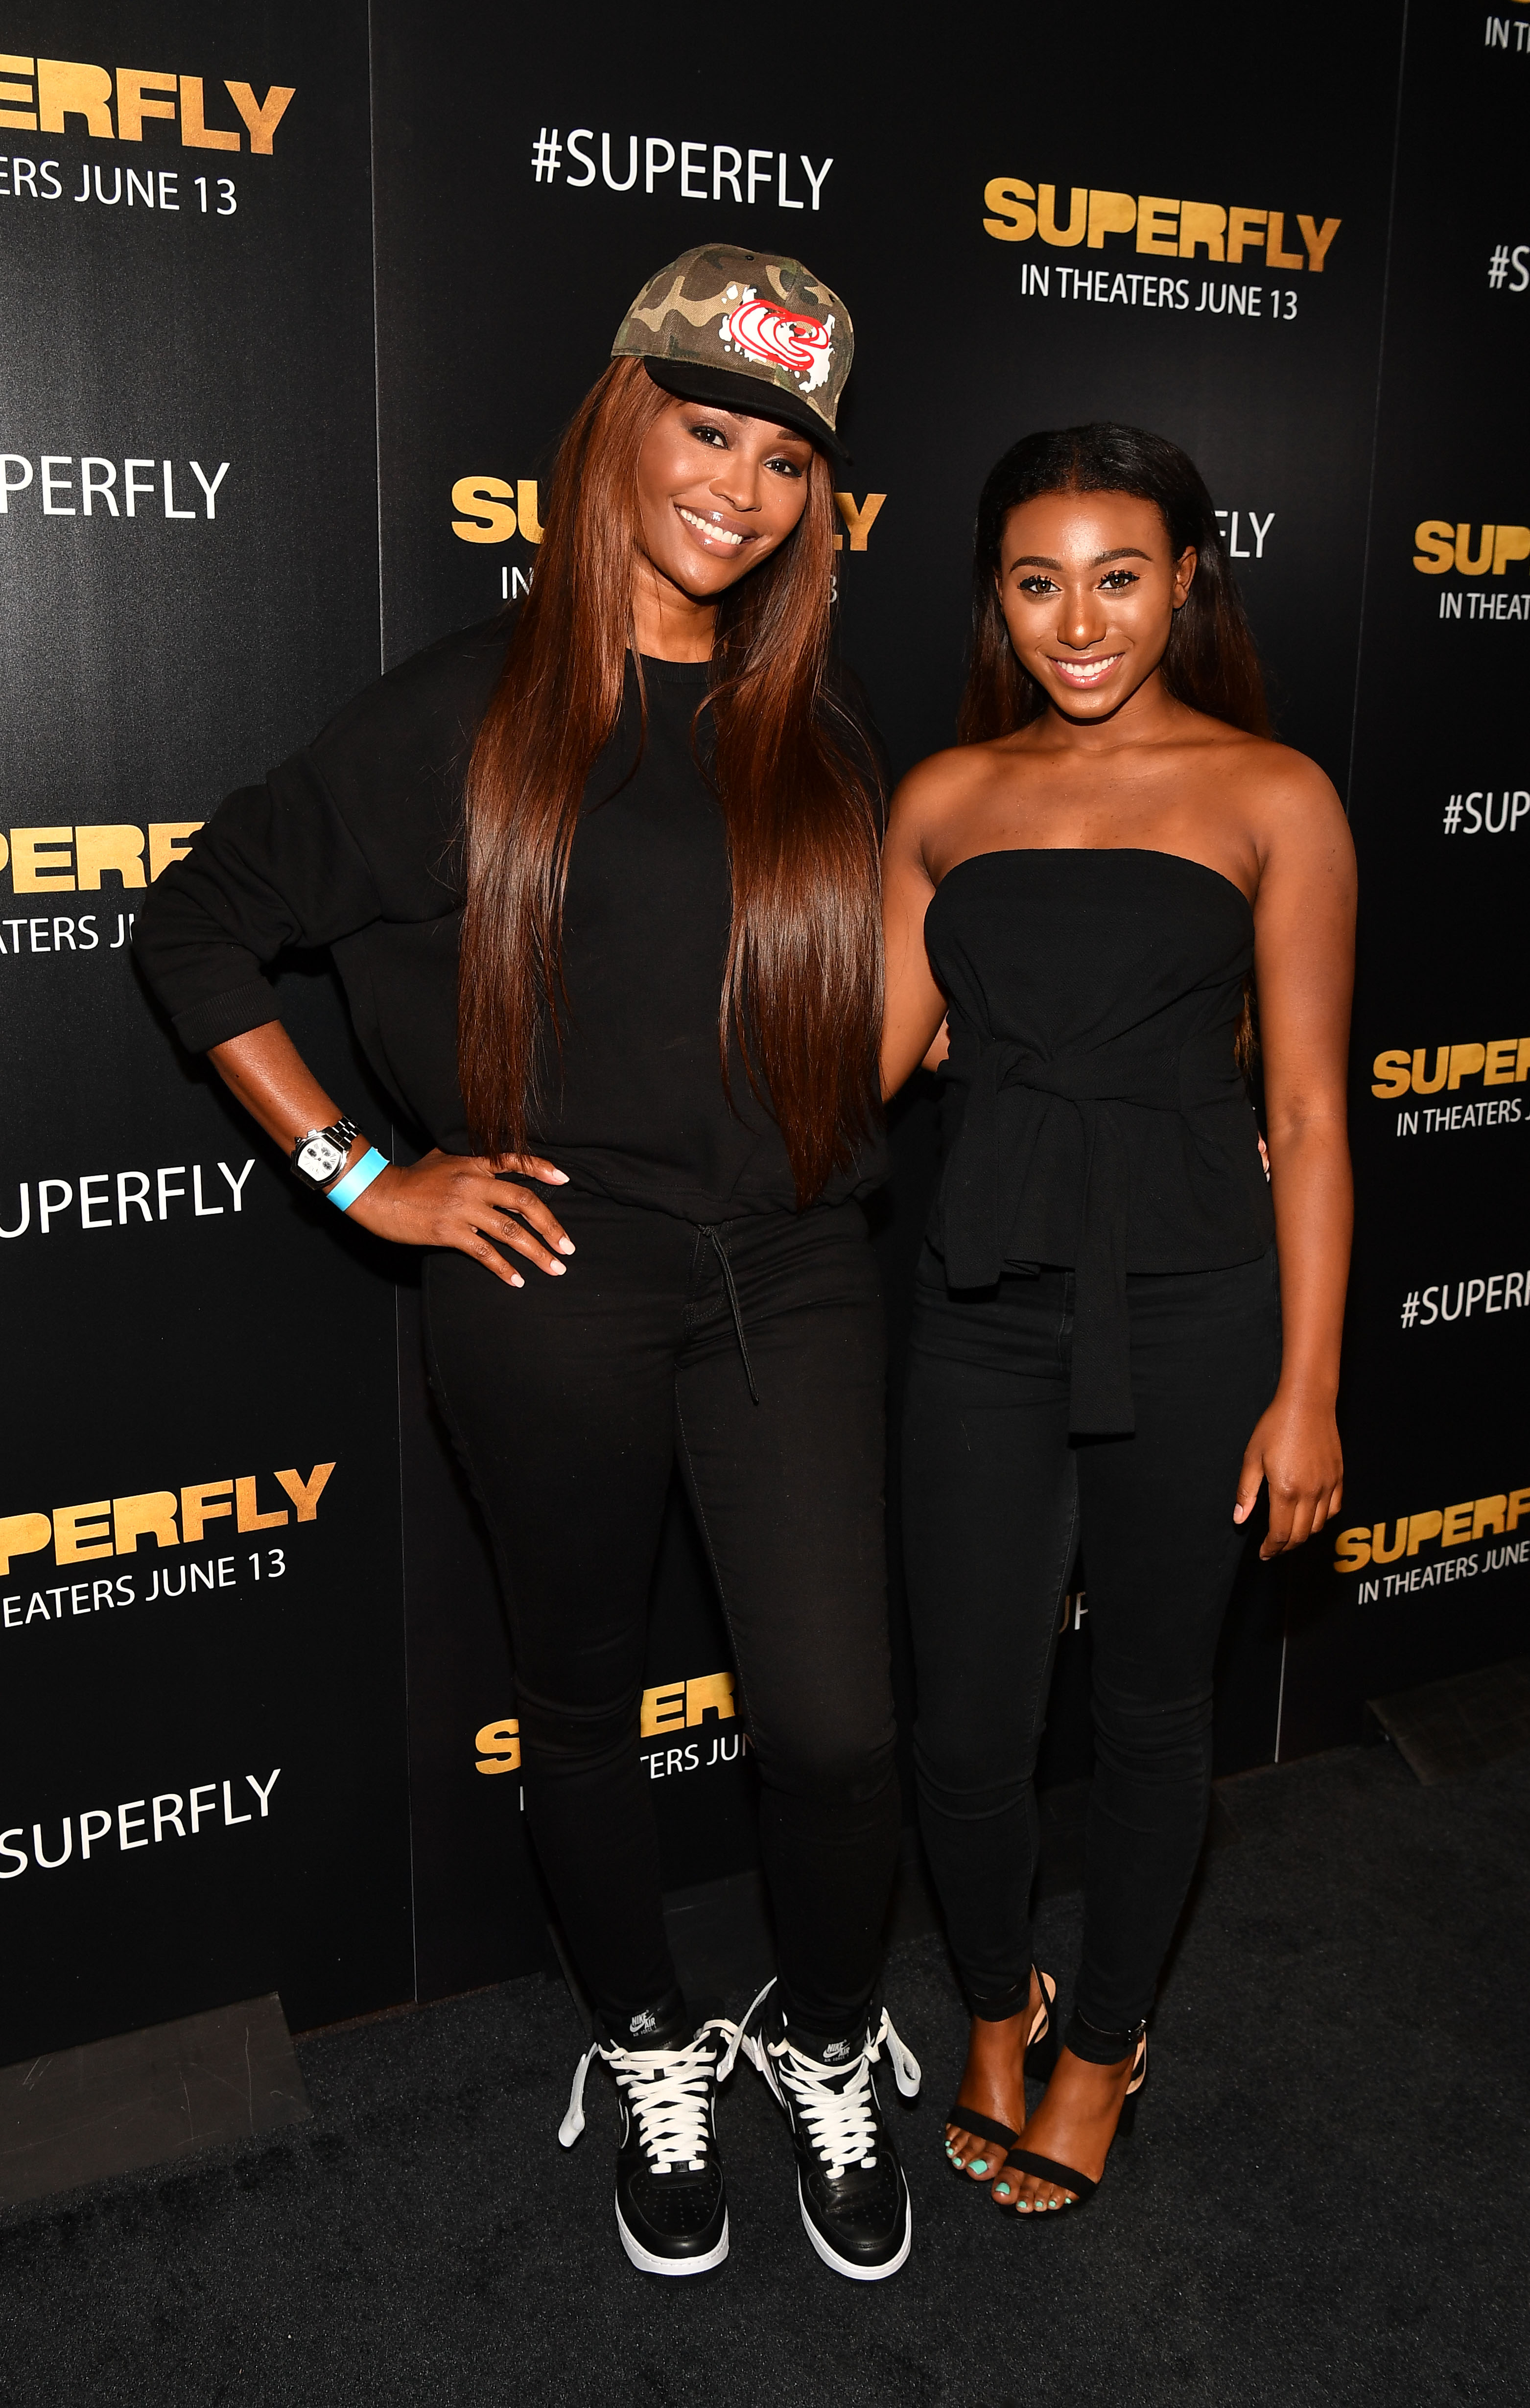 During an episode of Real Housewives of Atlanta, Cynthia Bailey's daughter Noelle revealed to her that she is sexually fluid.